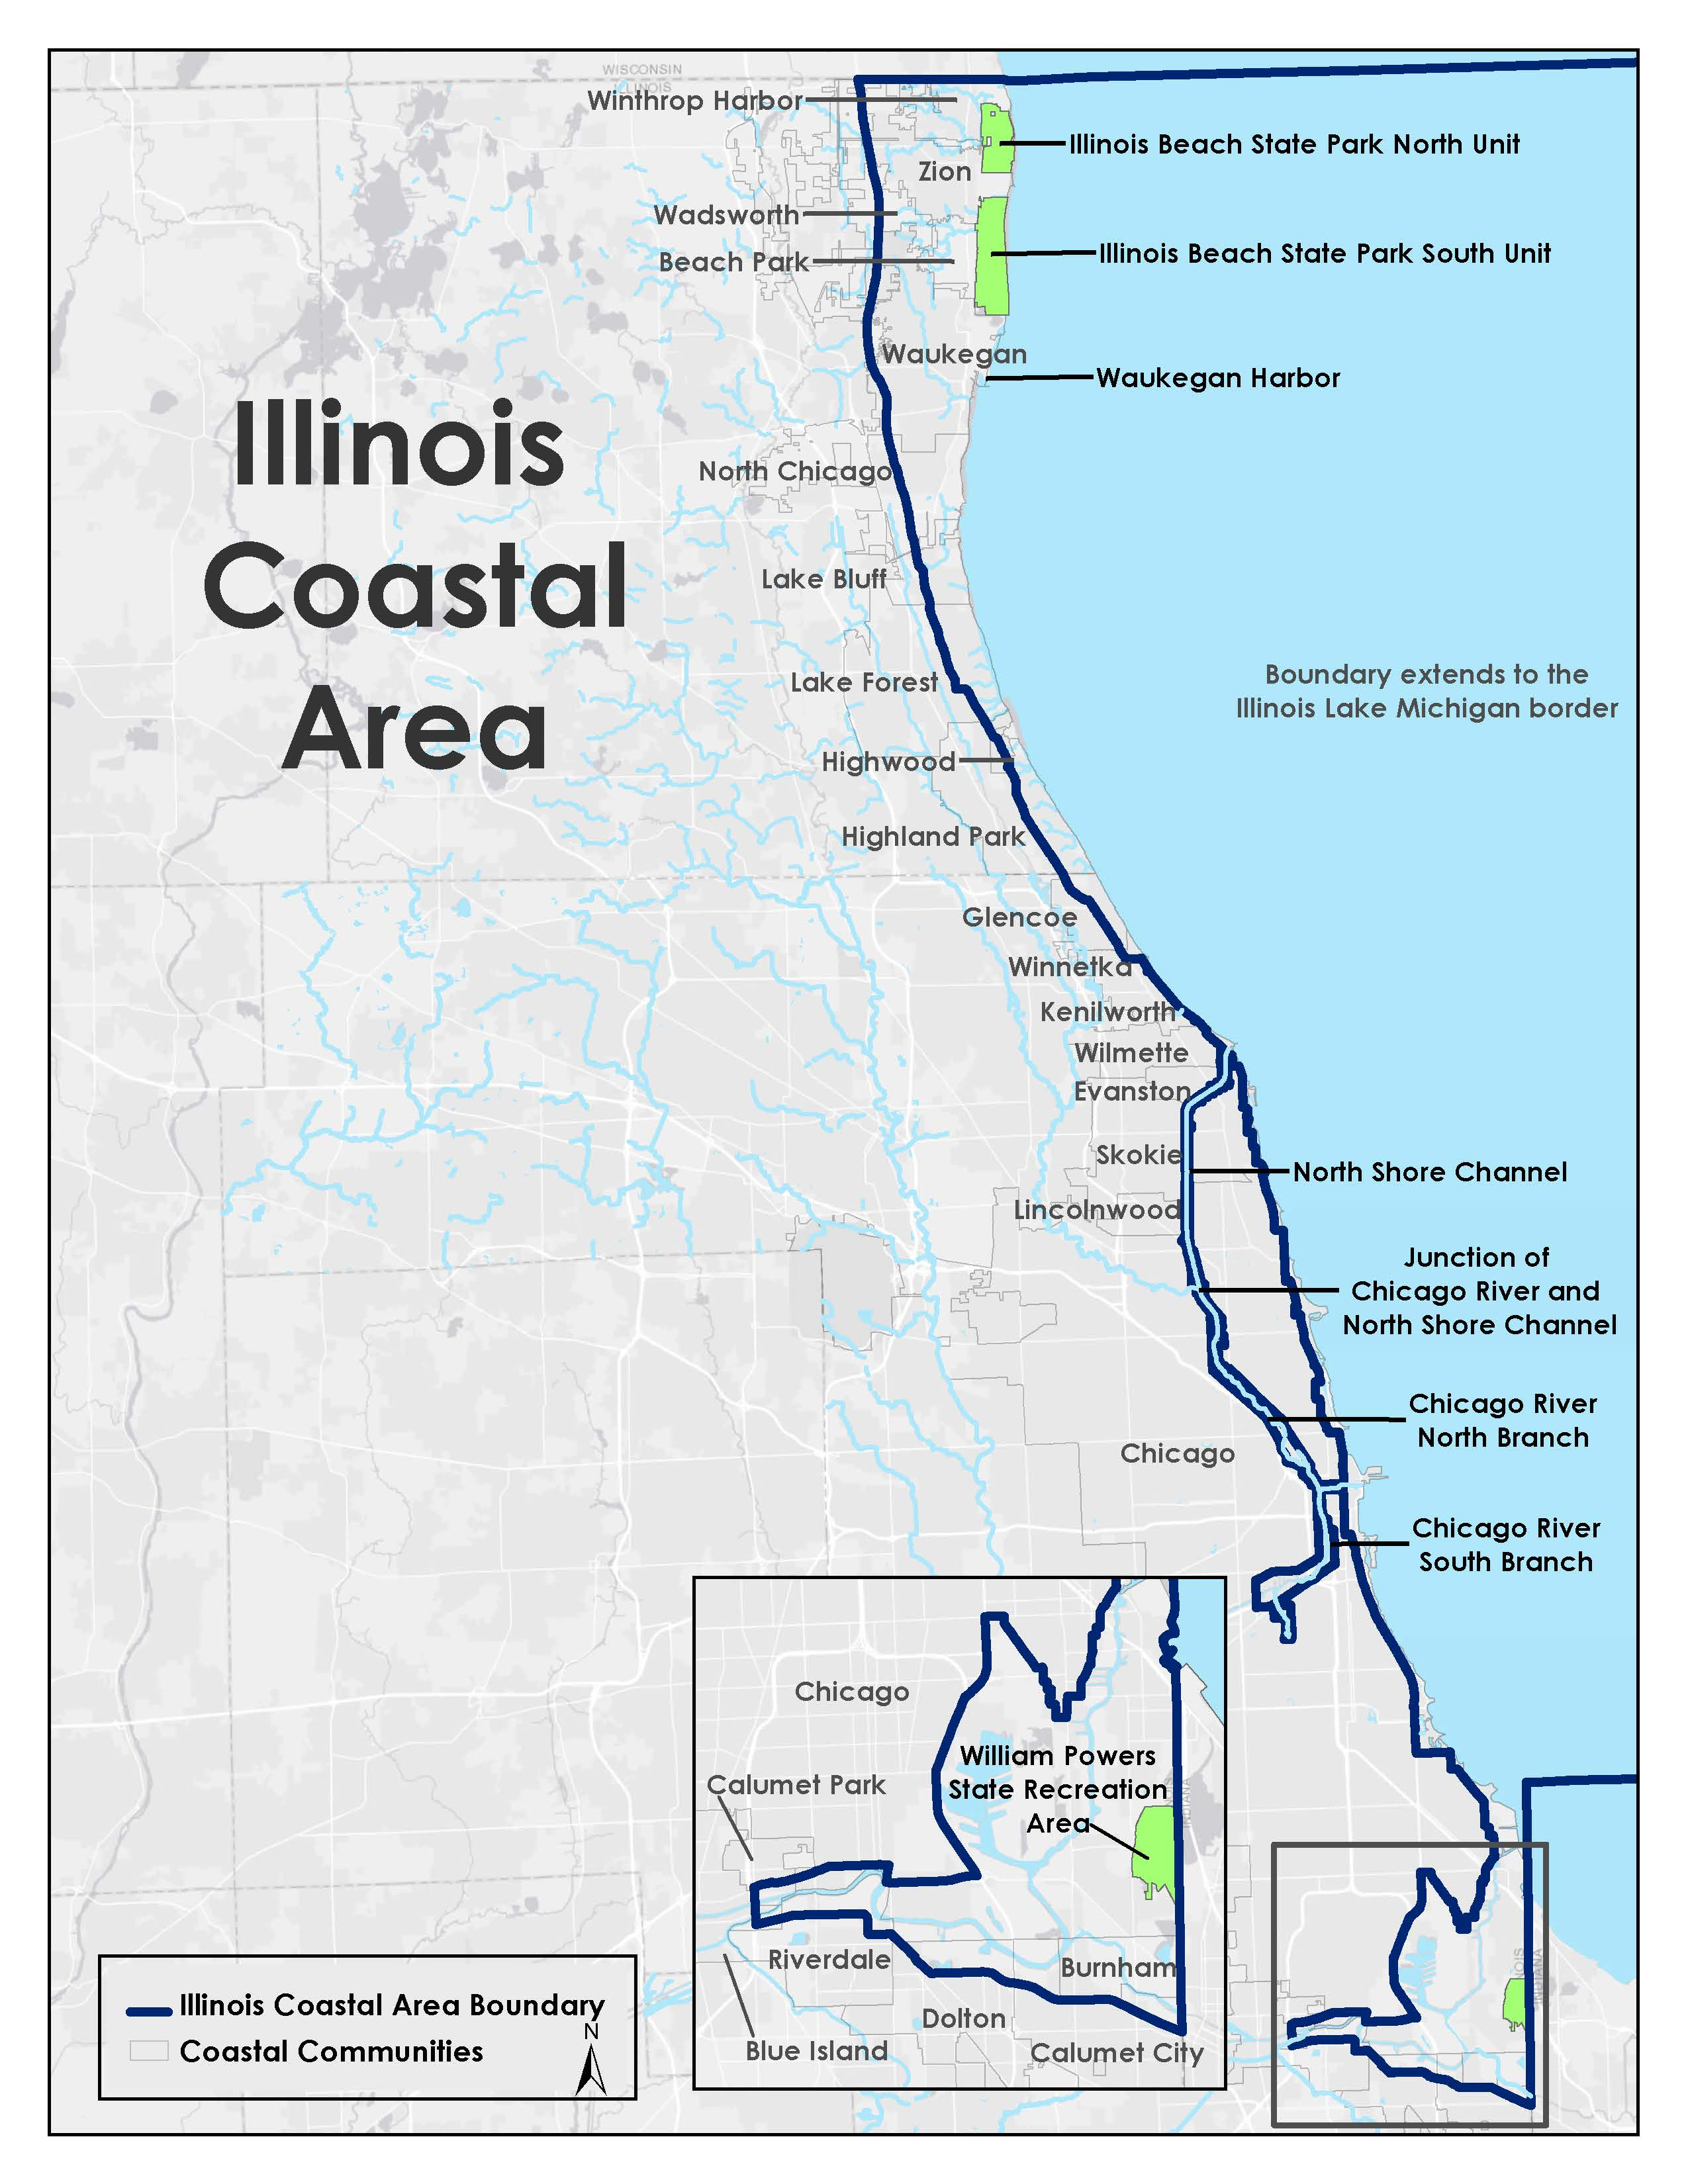 Map of Illinois Coastal Area